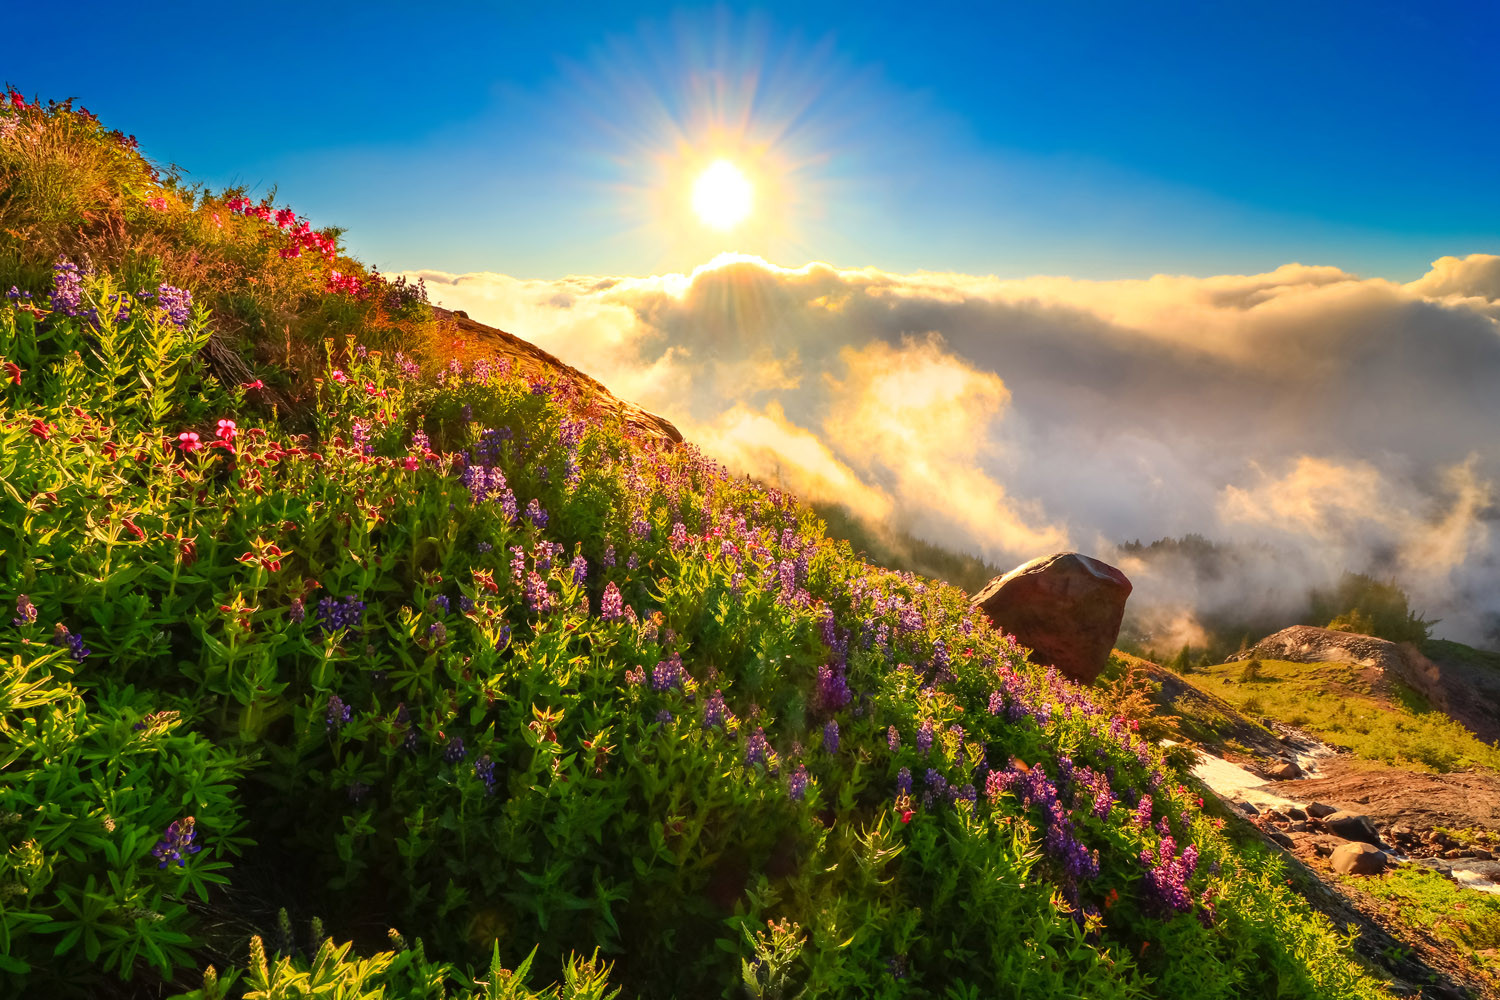 Sunburst-Across-Alpine-Wildflowers.jpg